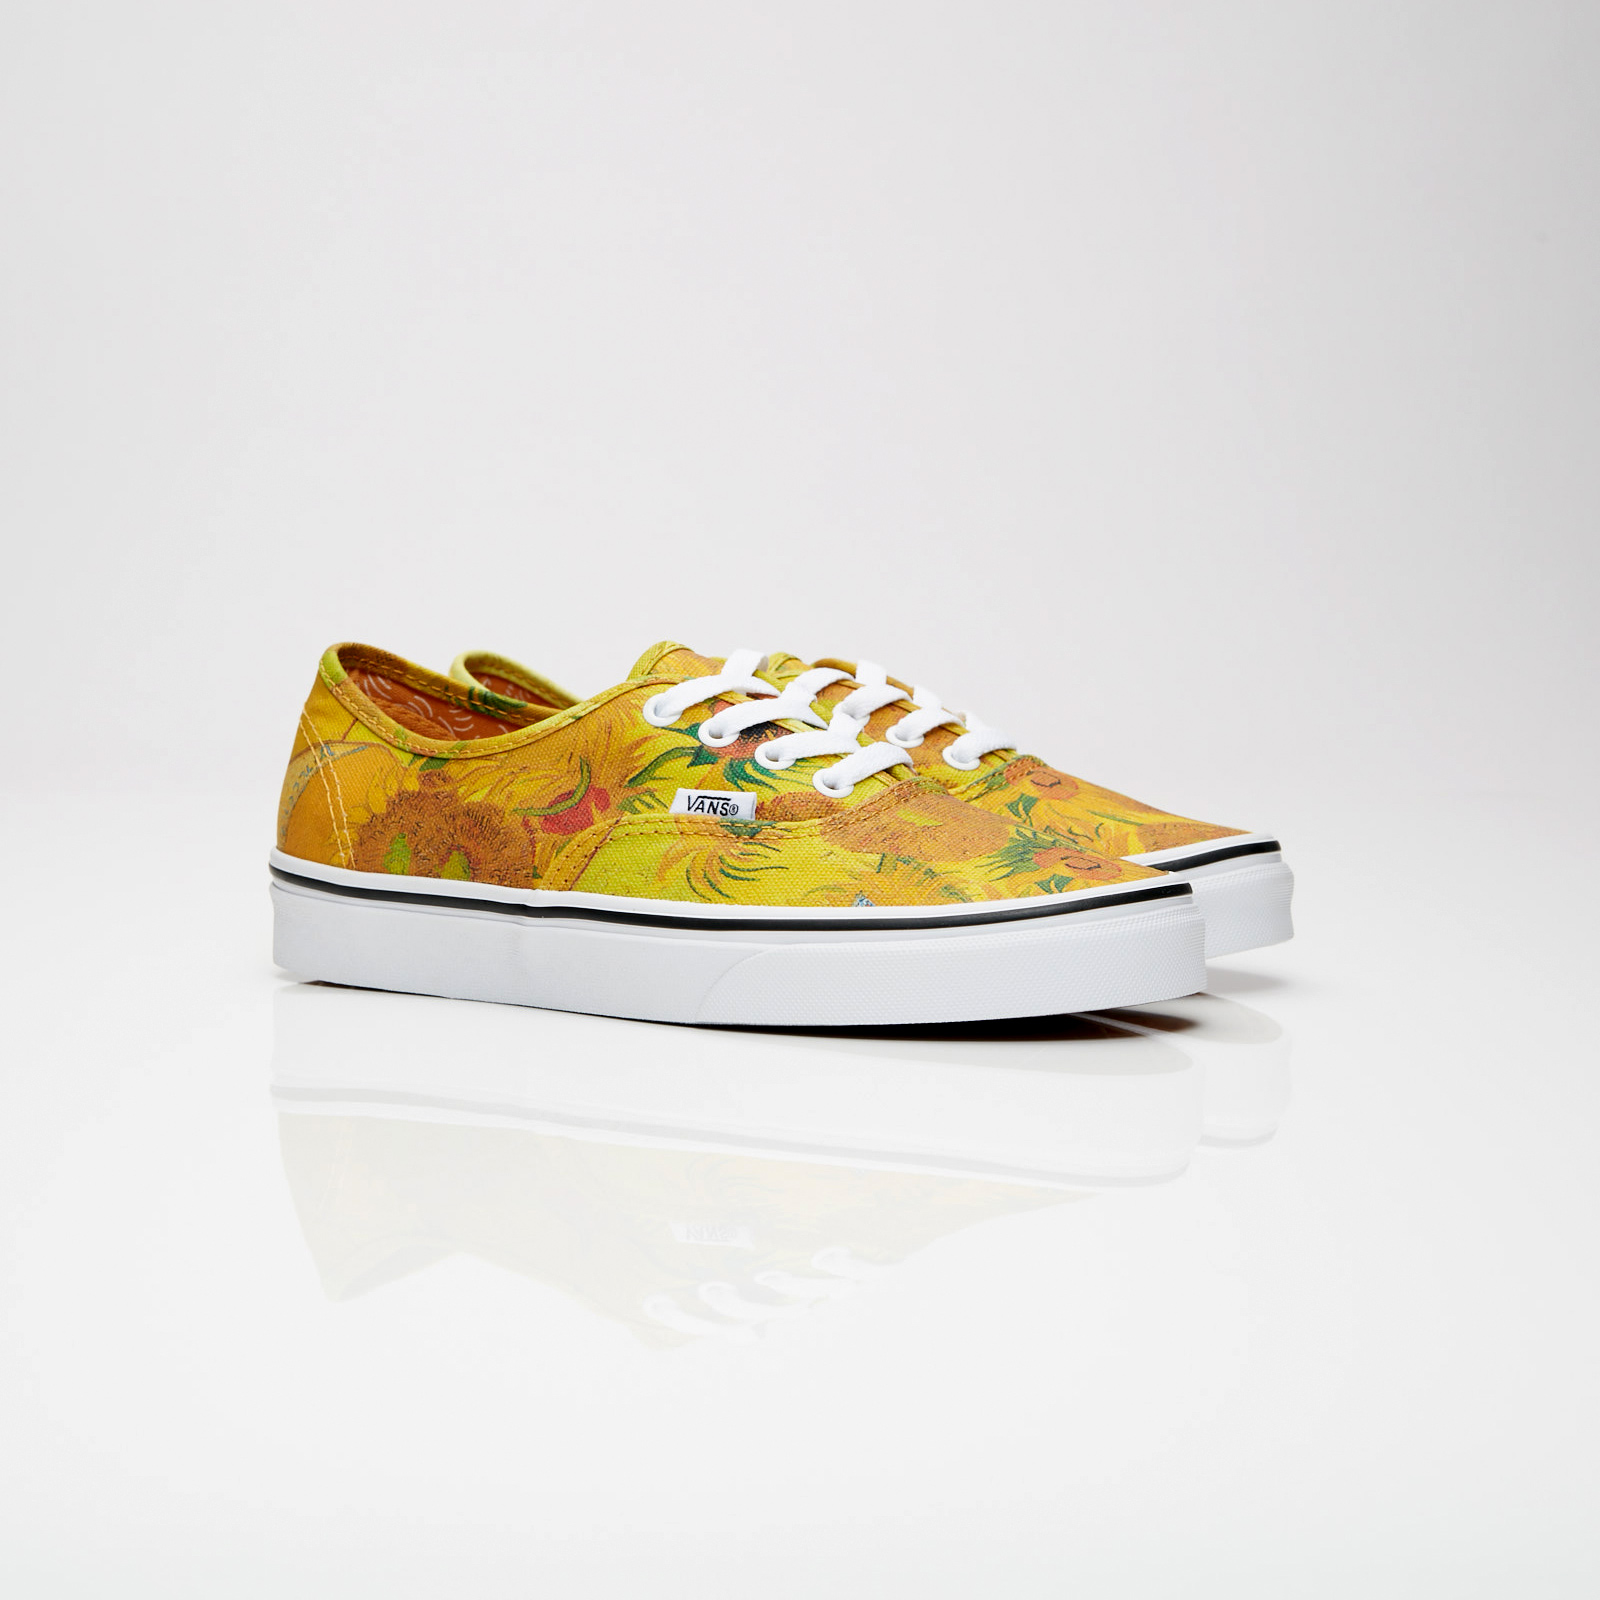 db788fbb7a Vans Vincent Van Gogh Authentic - Va38emu3w - Sneakersnstuff ...